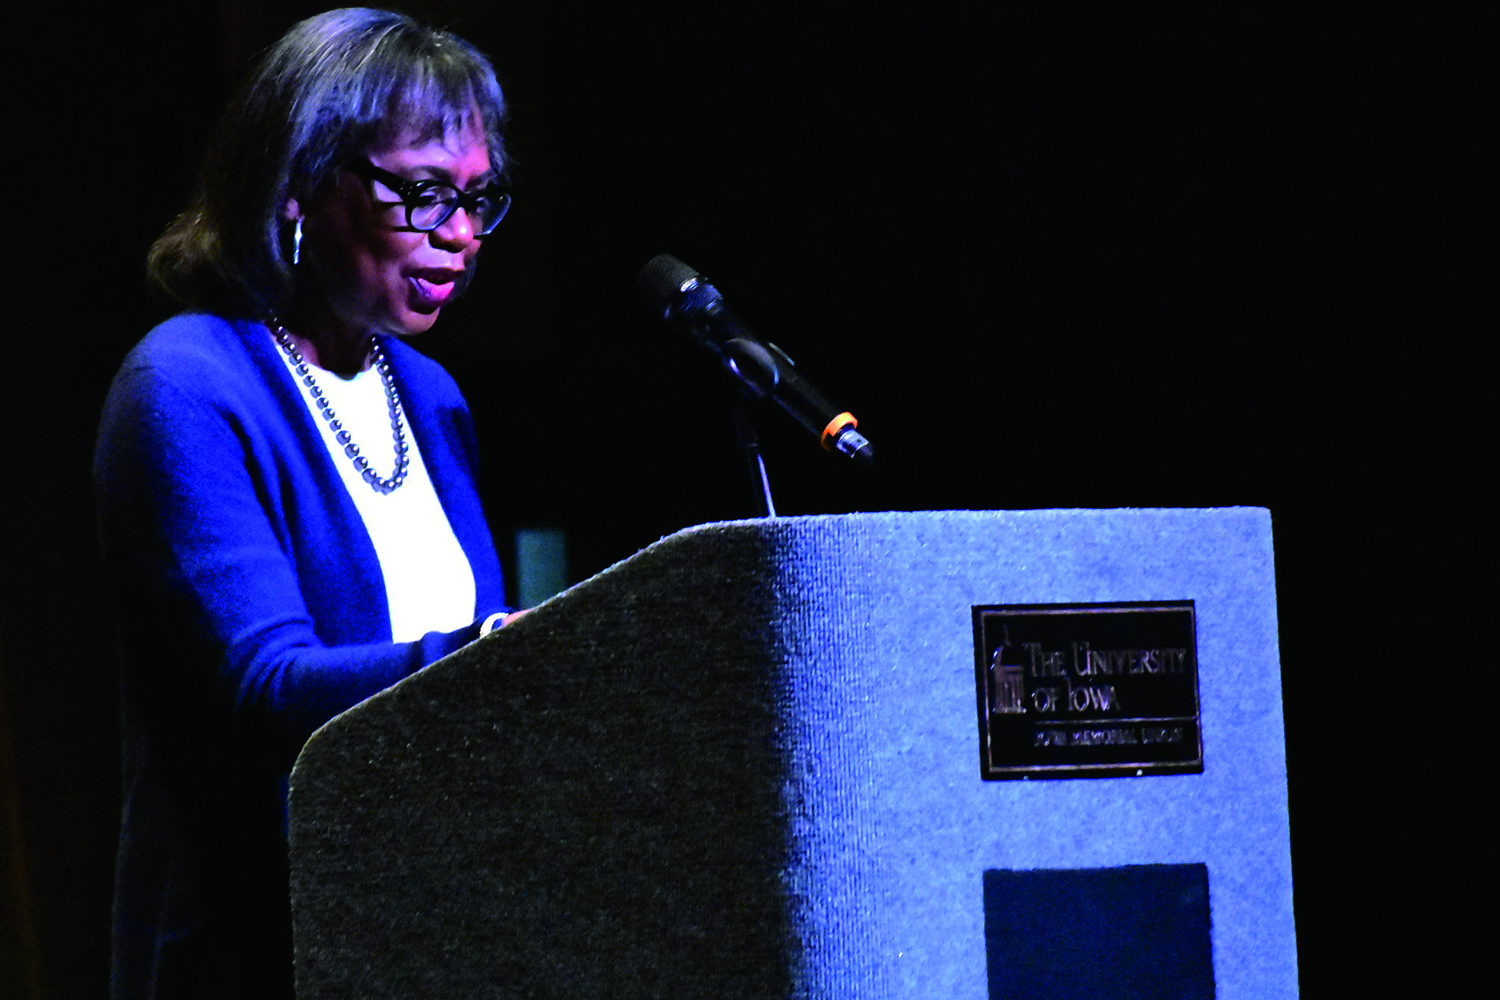 Professor Anita Hill gives a speech on sexual harassment on Thursday, January 23, 2020.